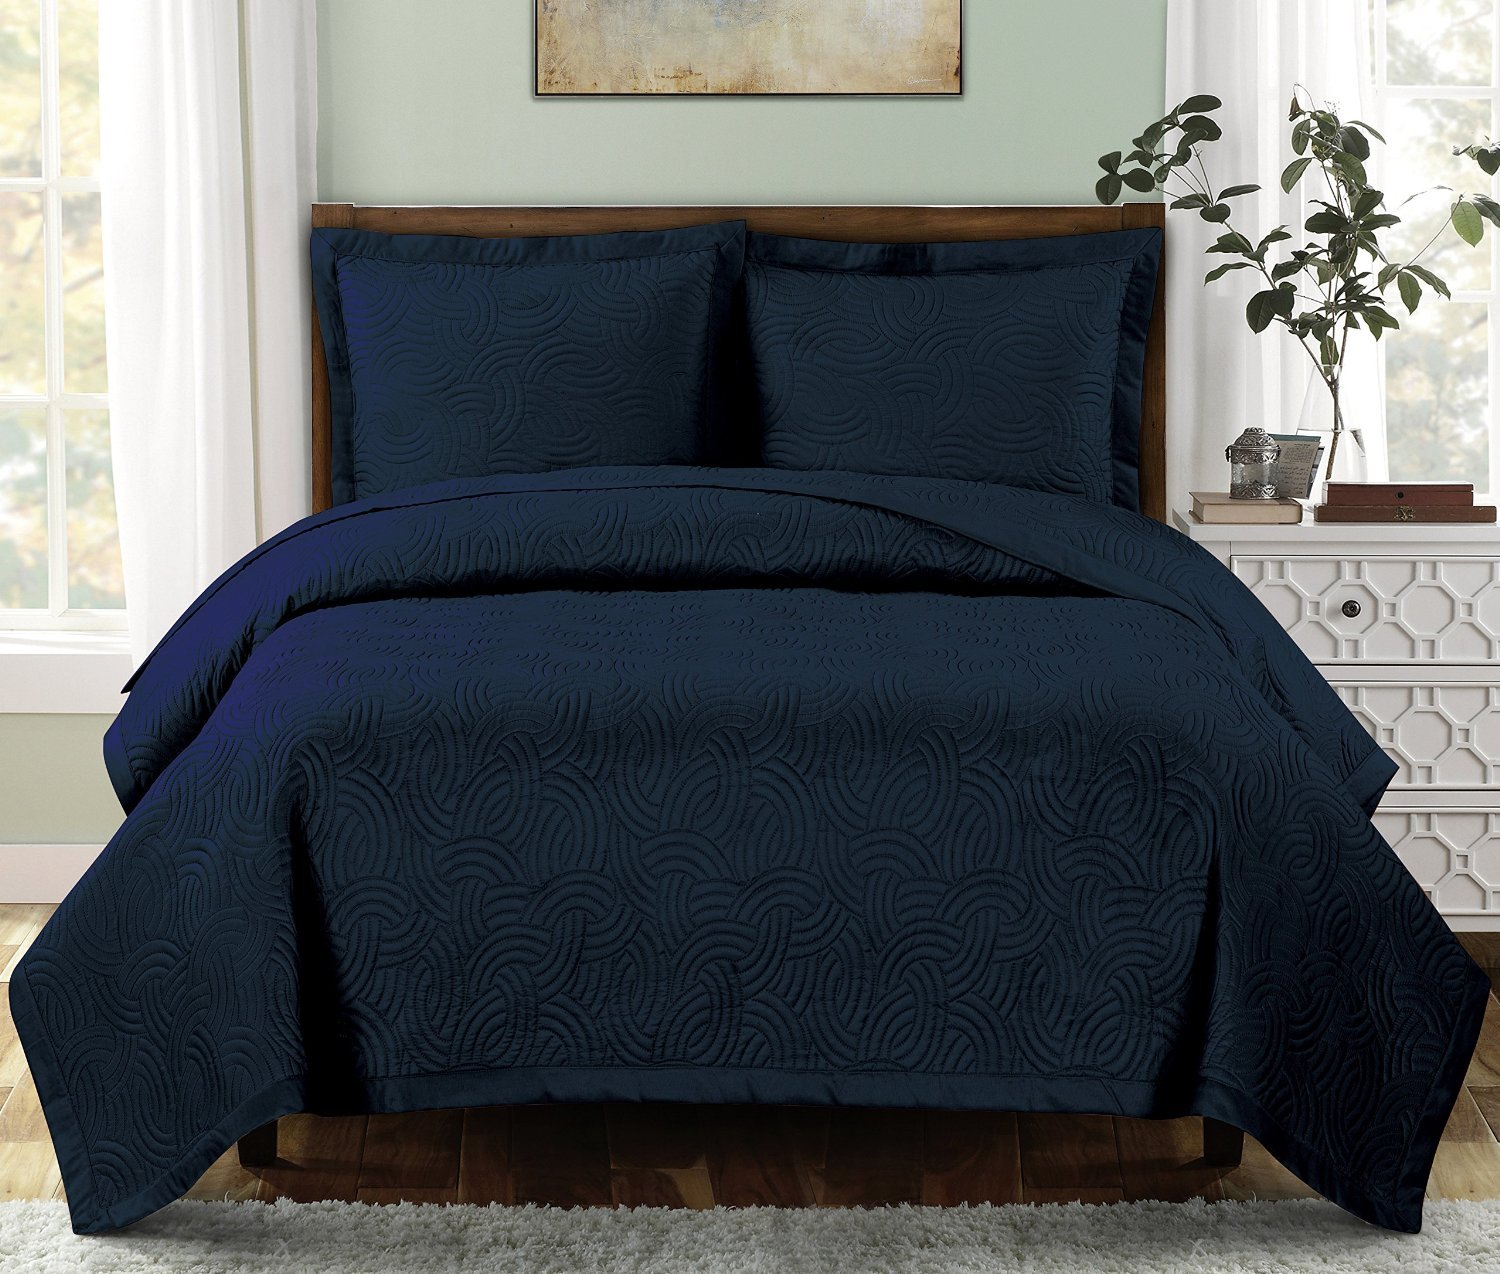 Twin Extra Long size Emerson Navy Coverlet 2pc set, Luxury Microfiber Embossed Print Quilted by Royal Hotel